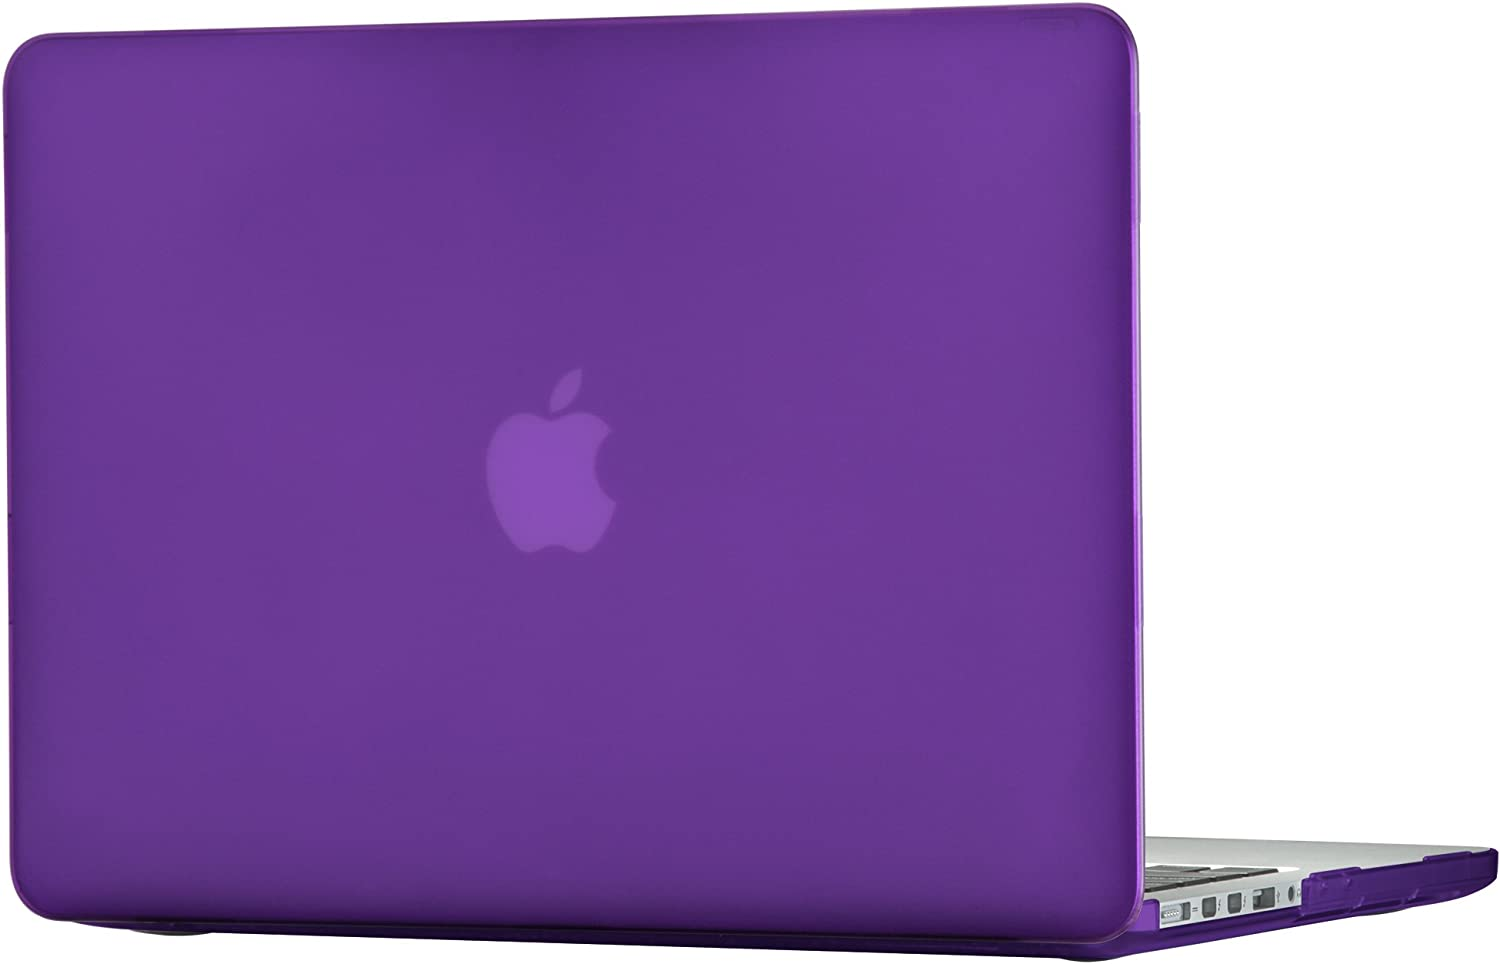 "Speck Products 86400-6010 SmartShell Case for MacBook Pro 13"" with Retina Display, Wildberry Purple"